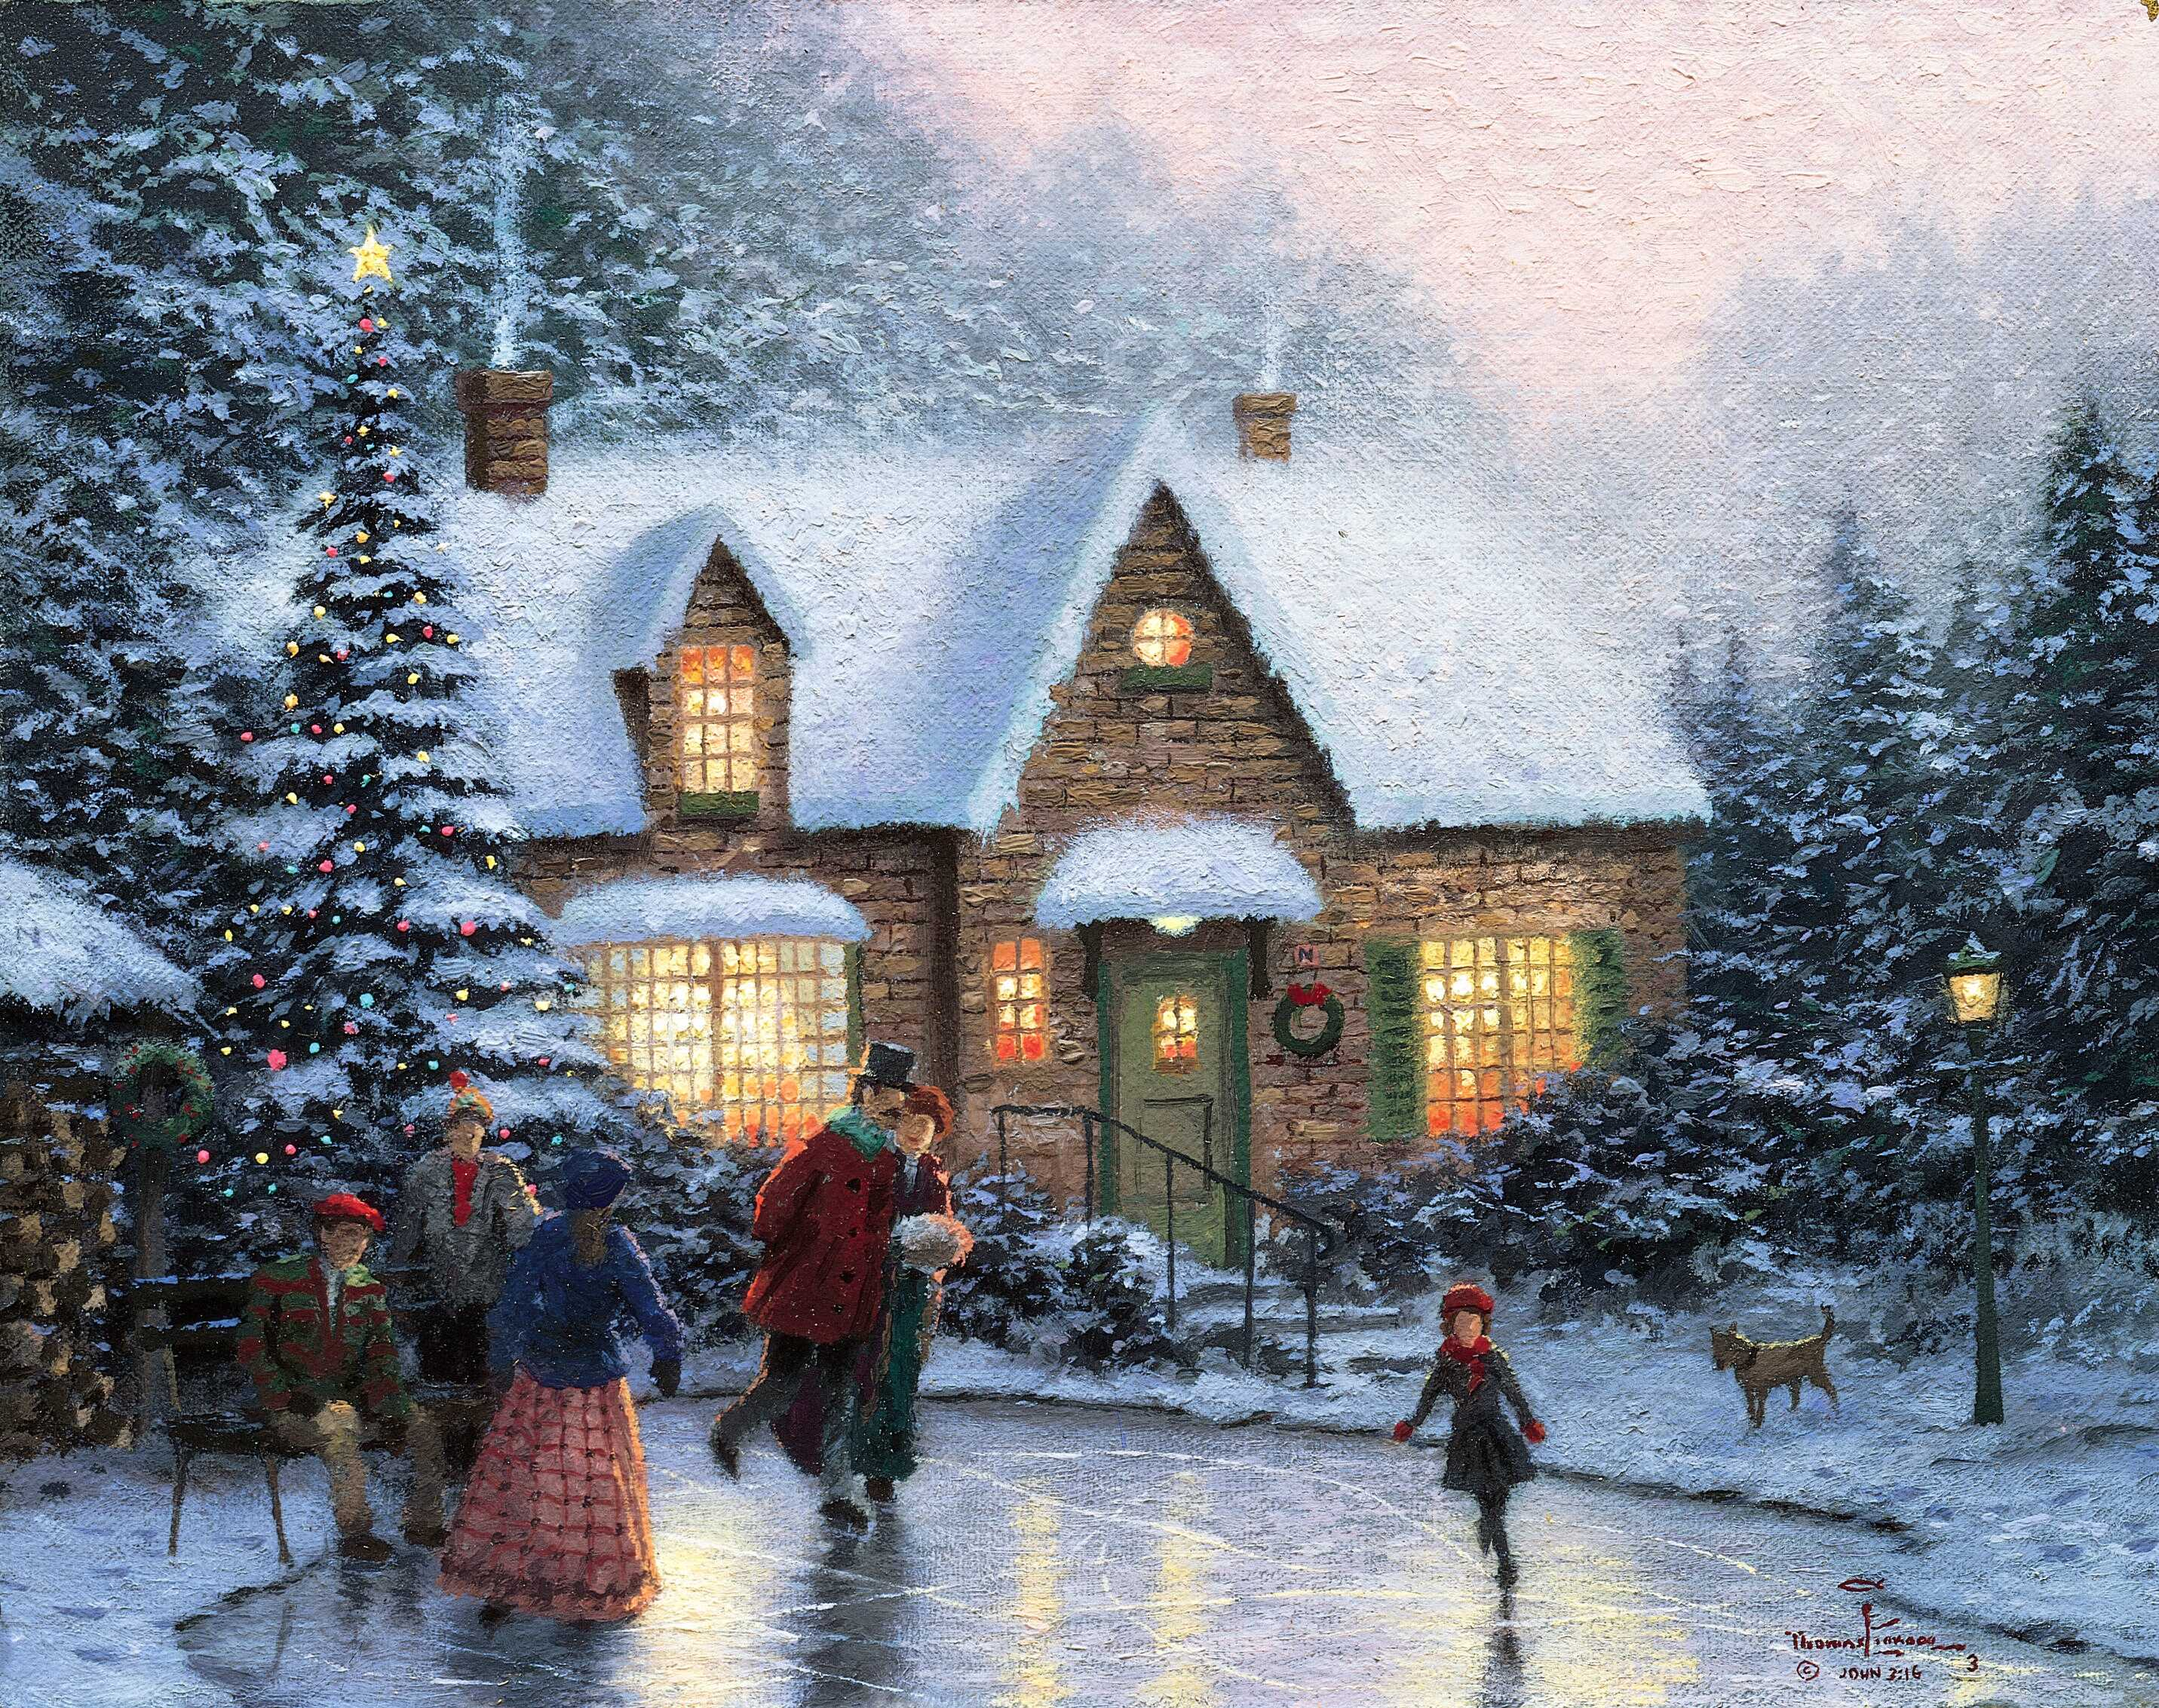 Thomas Kinkade Christmas.Thomas Kinkade Christmas Christmas Photo 40842022 Fanpop